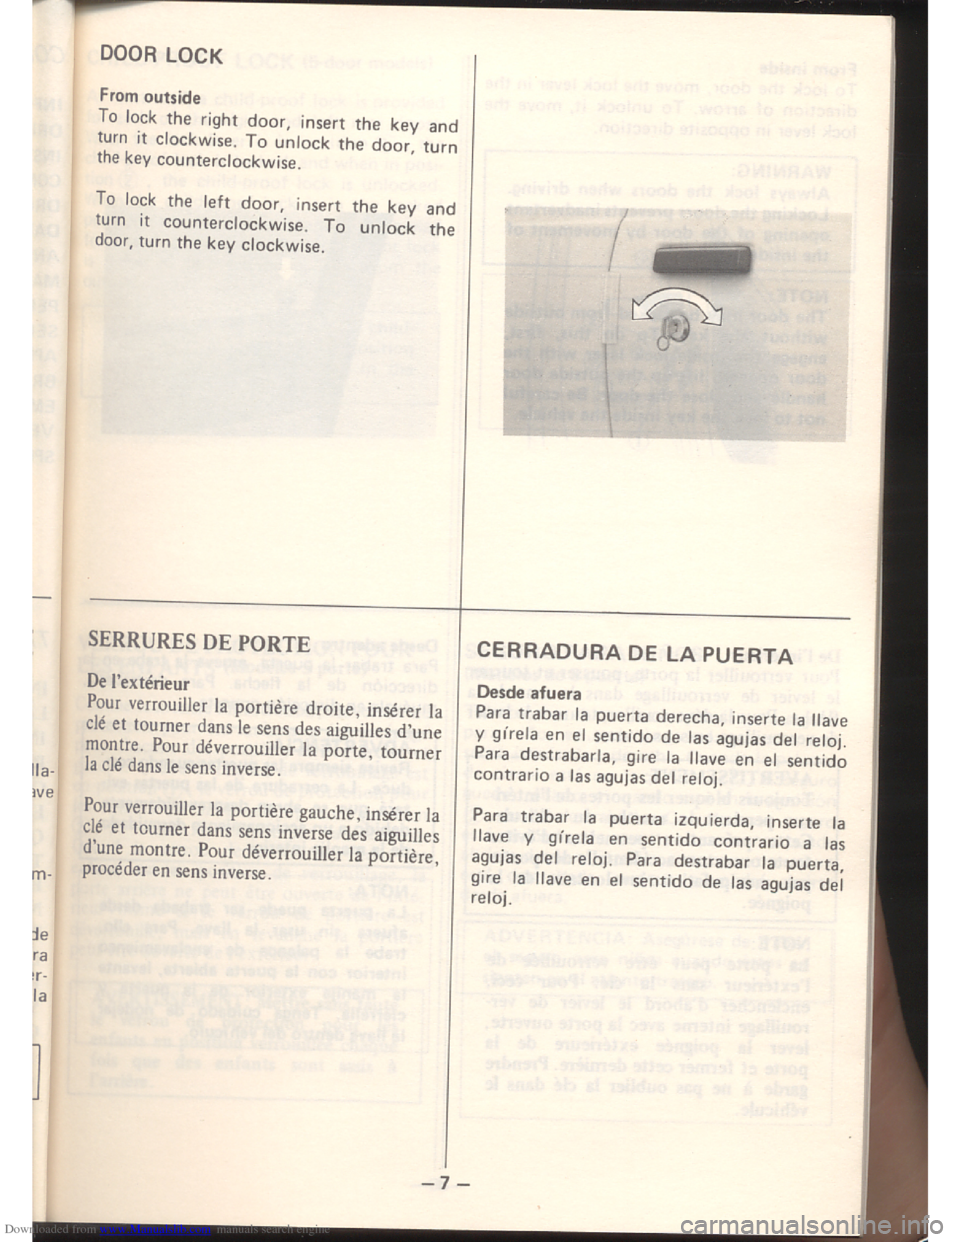 SUZUKI ALTO 1985 2.G Owners Manual Downloaded from www.Manualslib.com manuals search engine